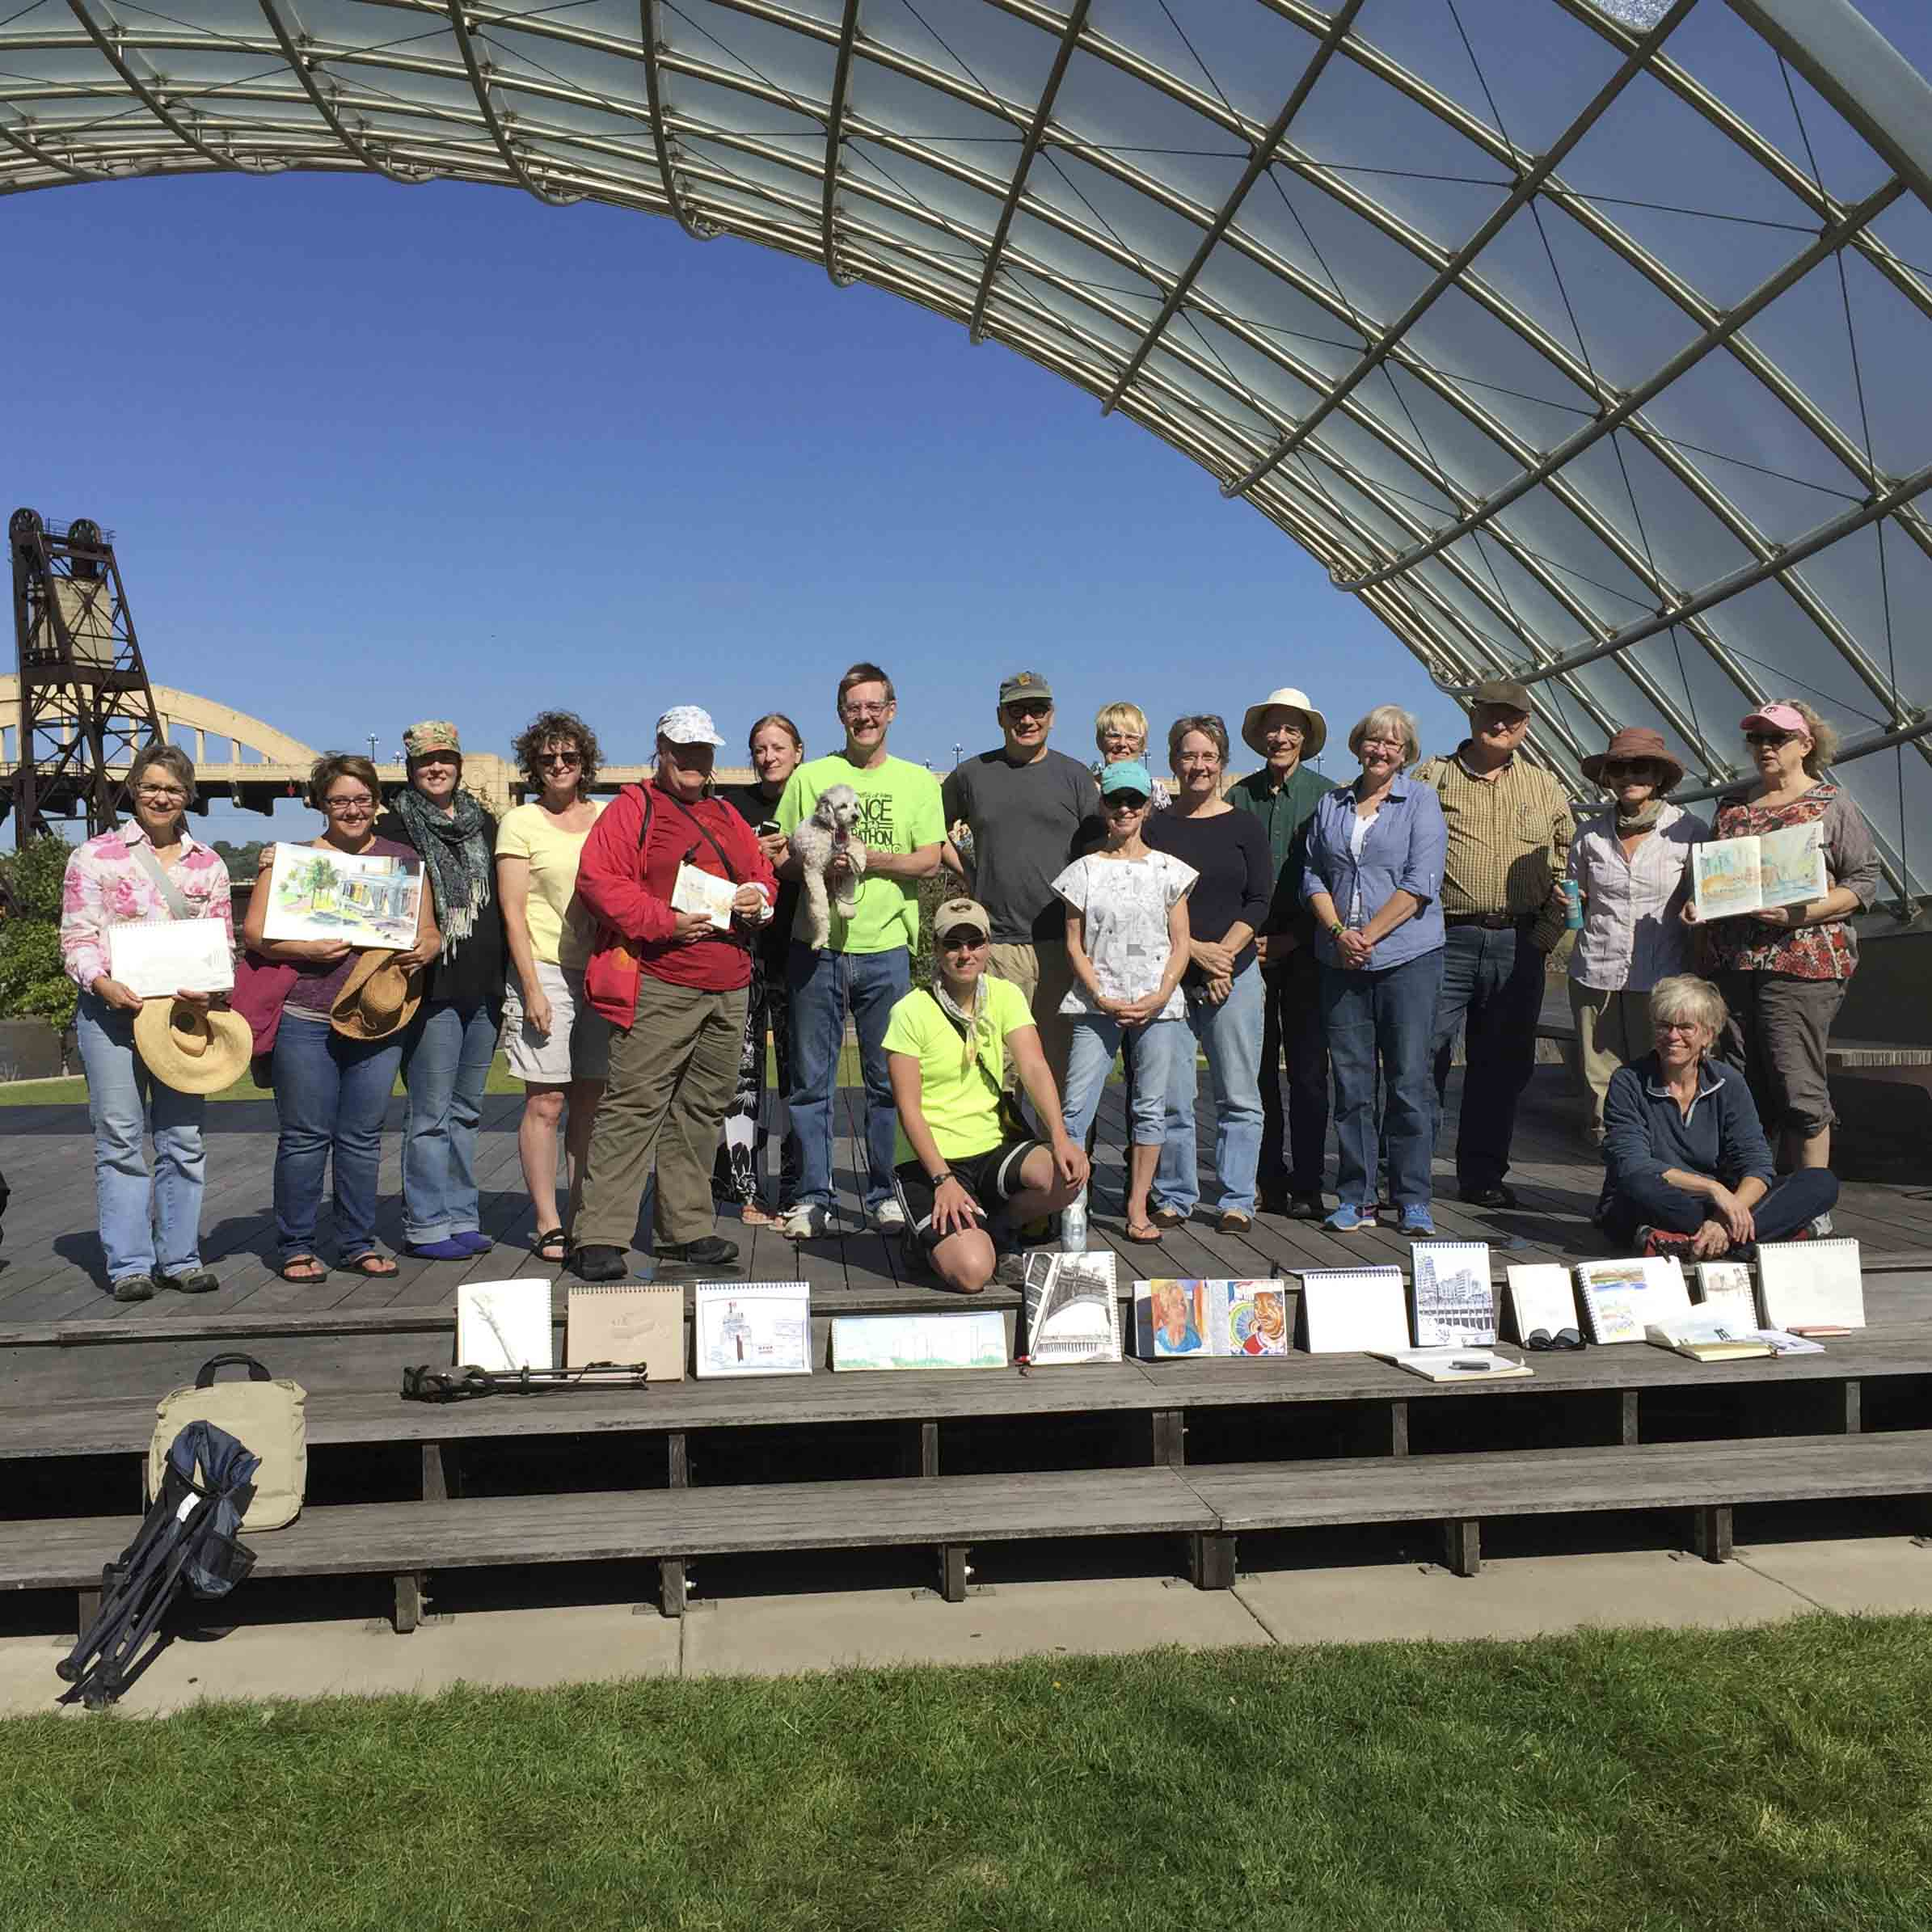 Here is the group from the September Sketch at Raspberry Park in Saint Paul